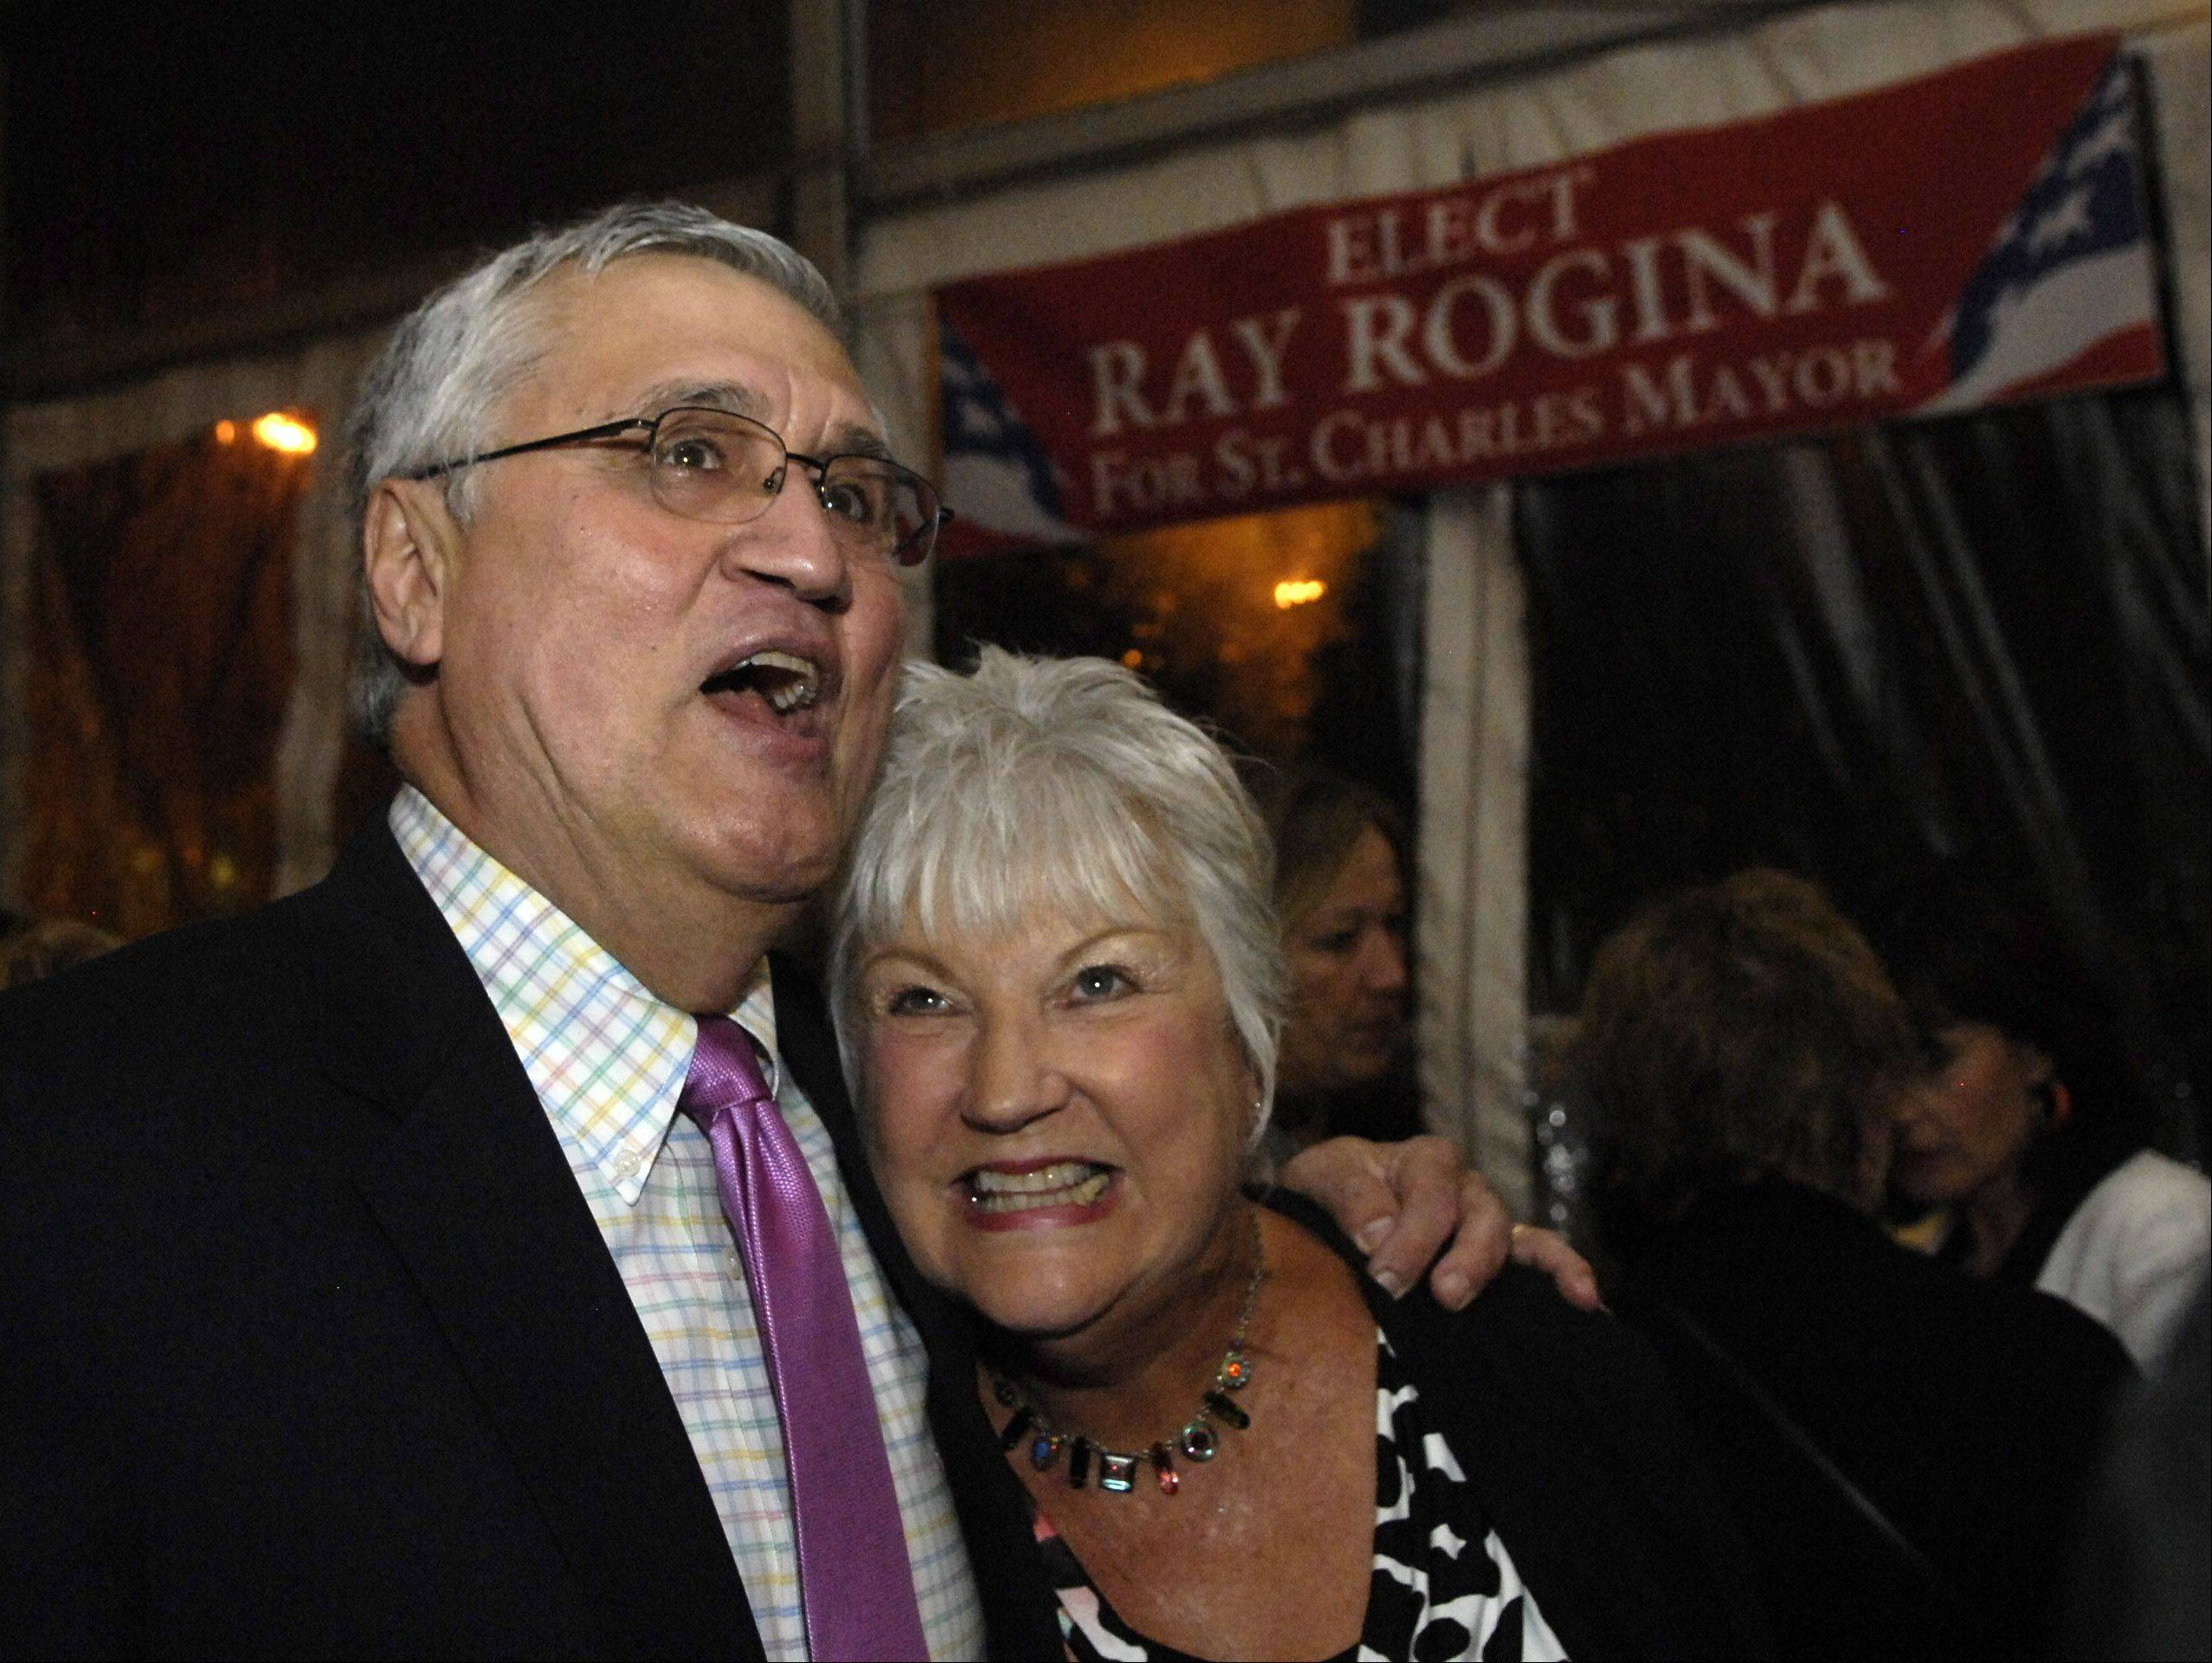 Ray Rogina gets a hug from supporter Lynn Radford of St. Charles while they await election results at The Office in St. Charles Tuesday night.